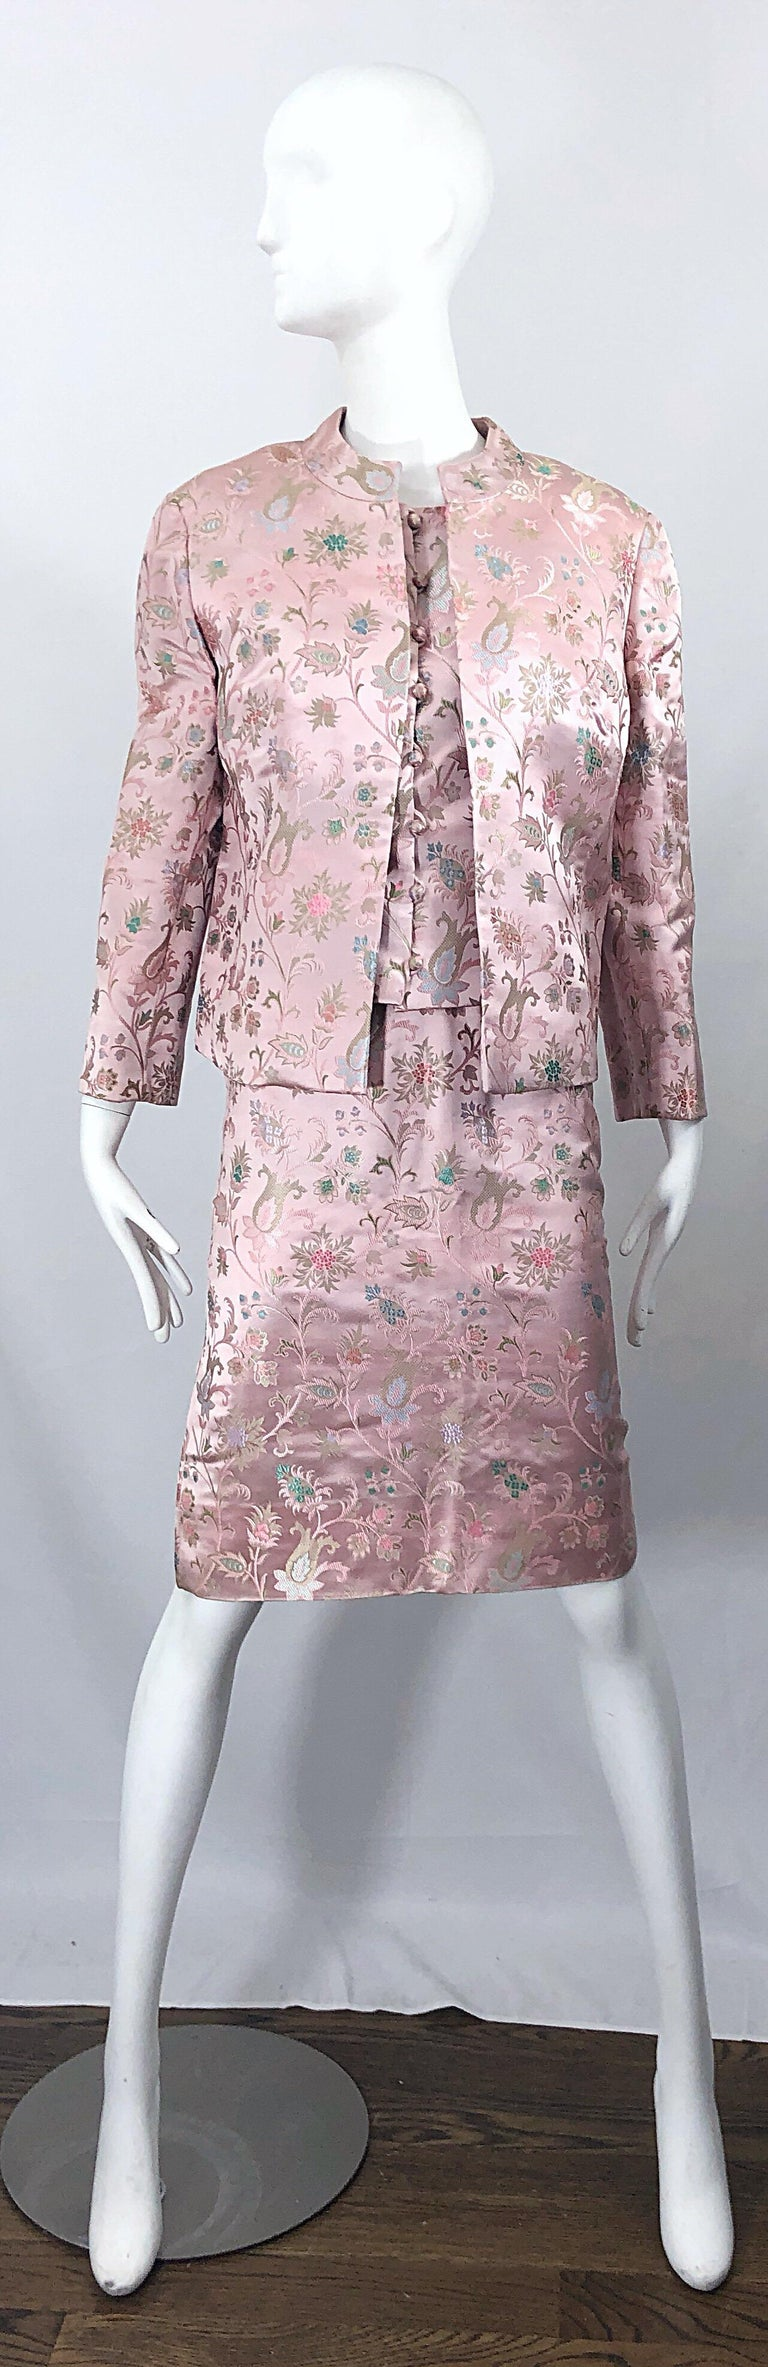 Dynasty 1960s For Lord & Taylor Light Pink Large Size 3 Piece Vintage Dress Set In Excellent Condition For Sale In Chicago, IL